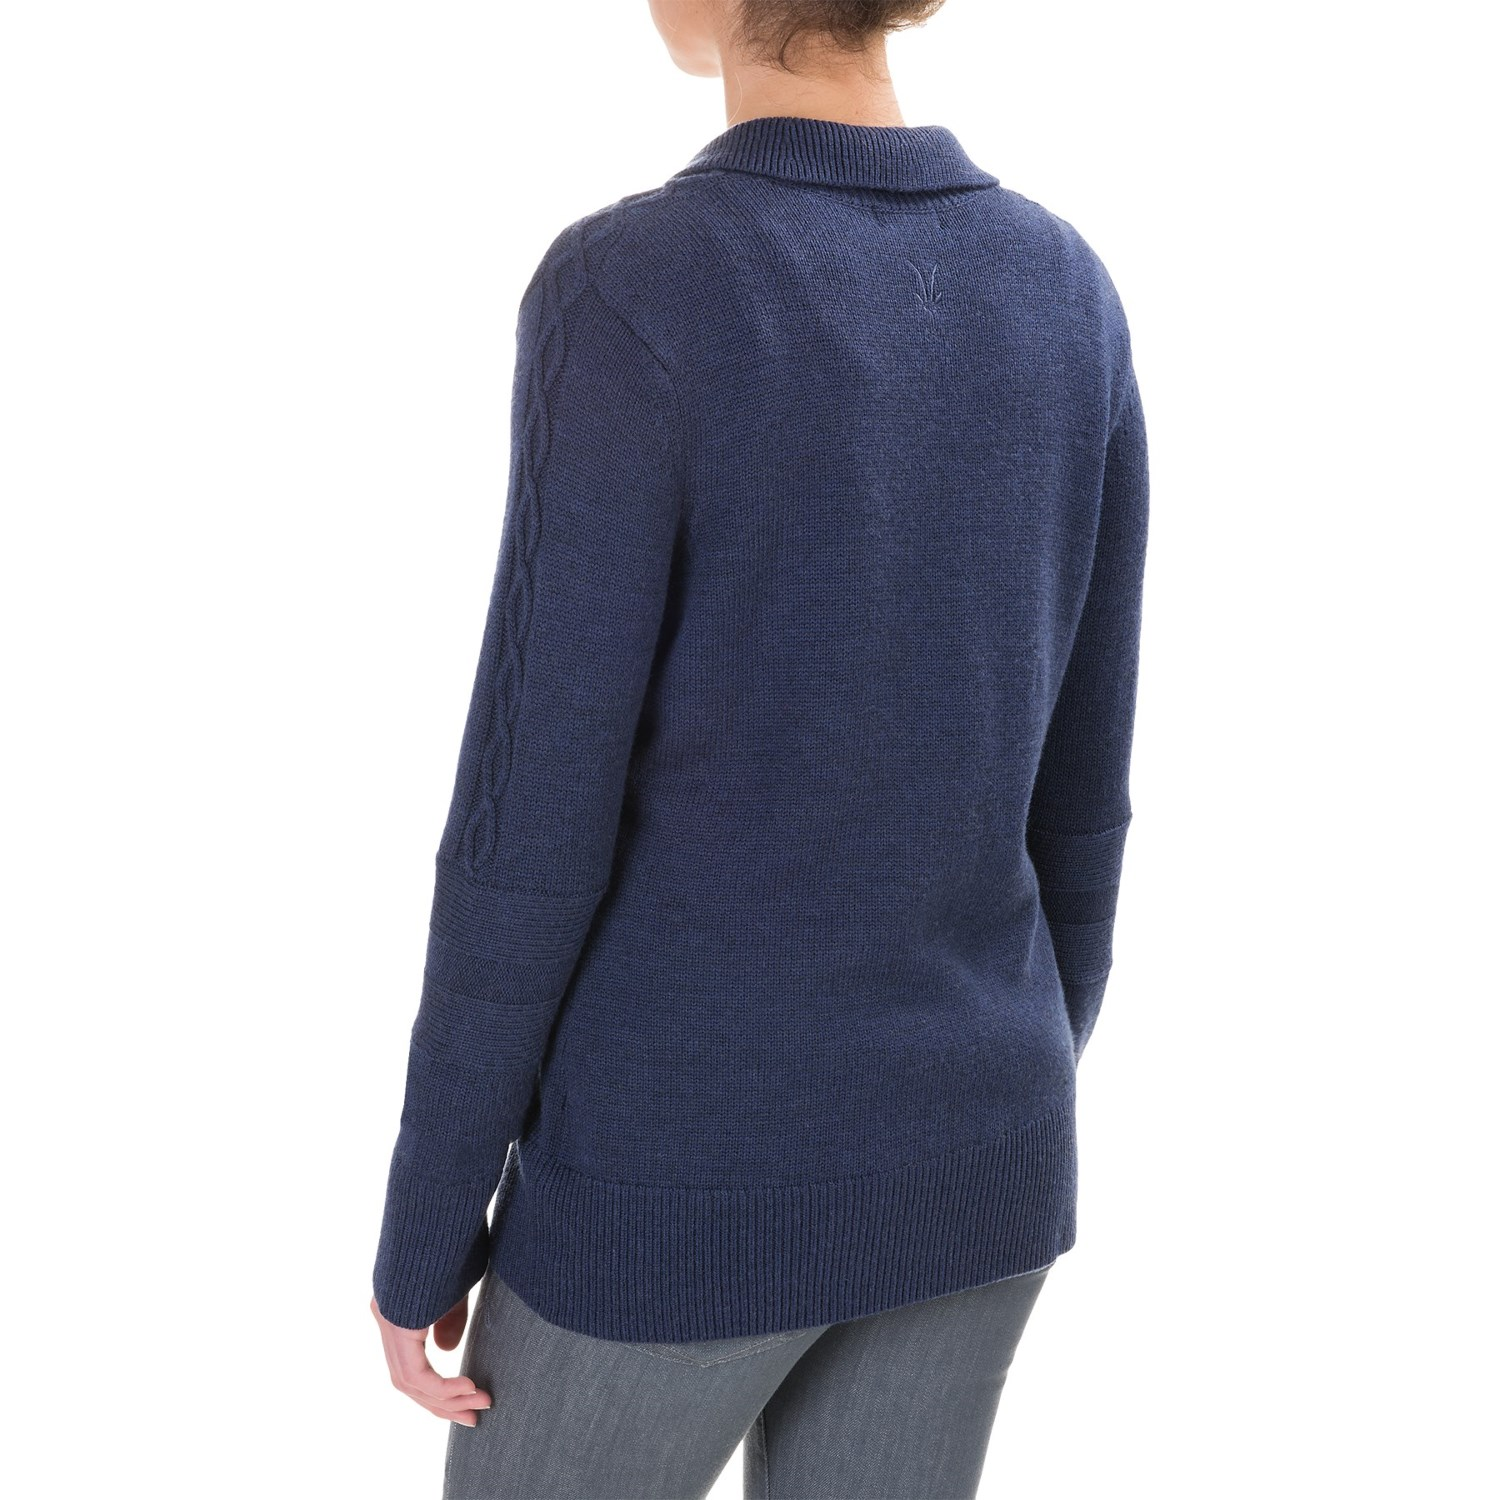 Ibex Chroma Sweater (For Women) - Save 57%